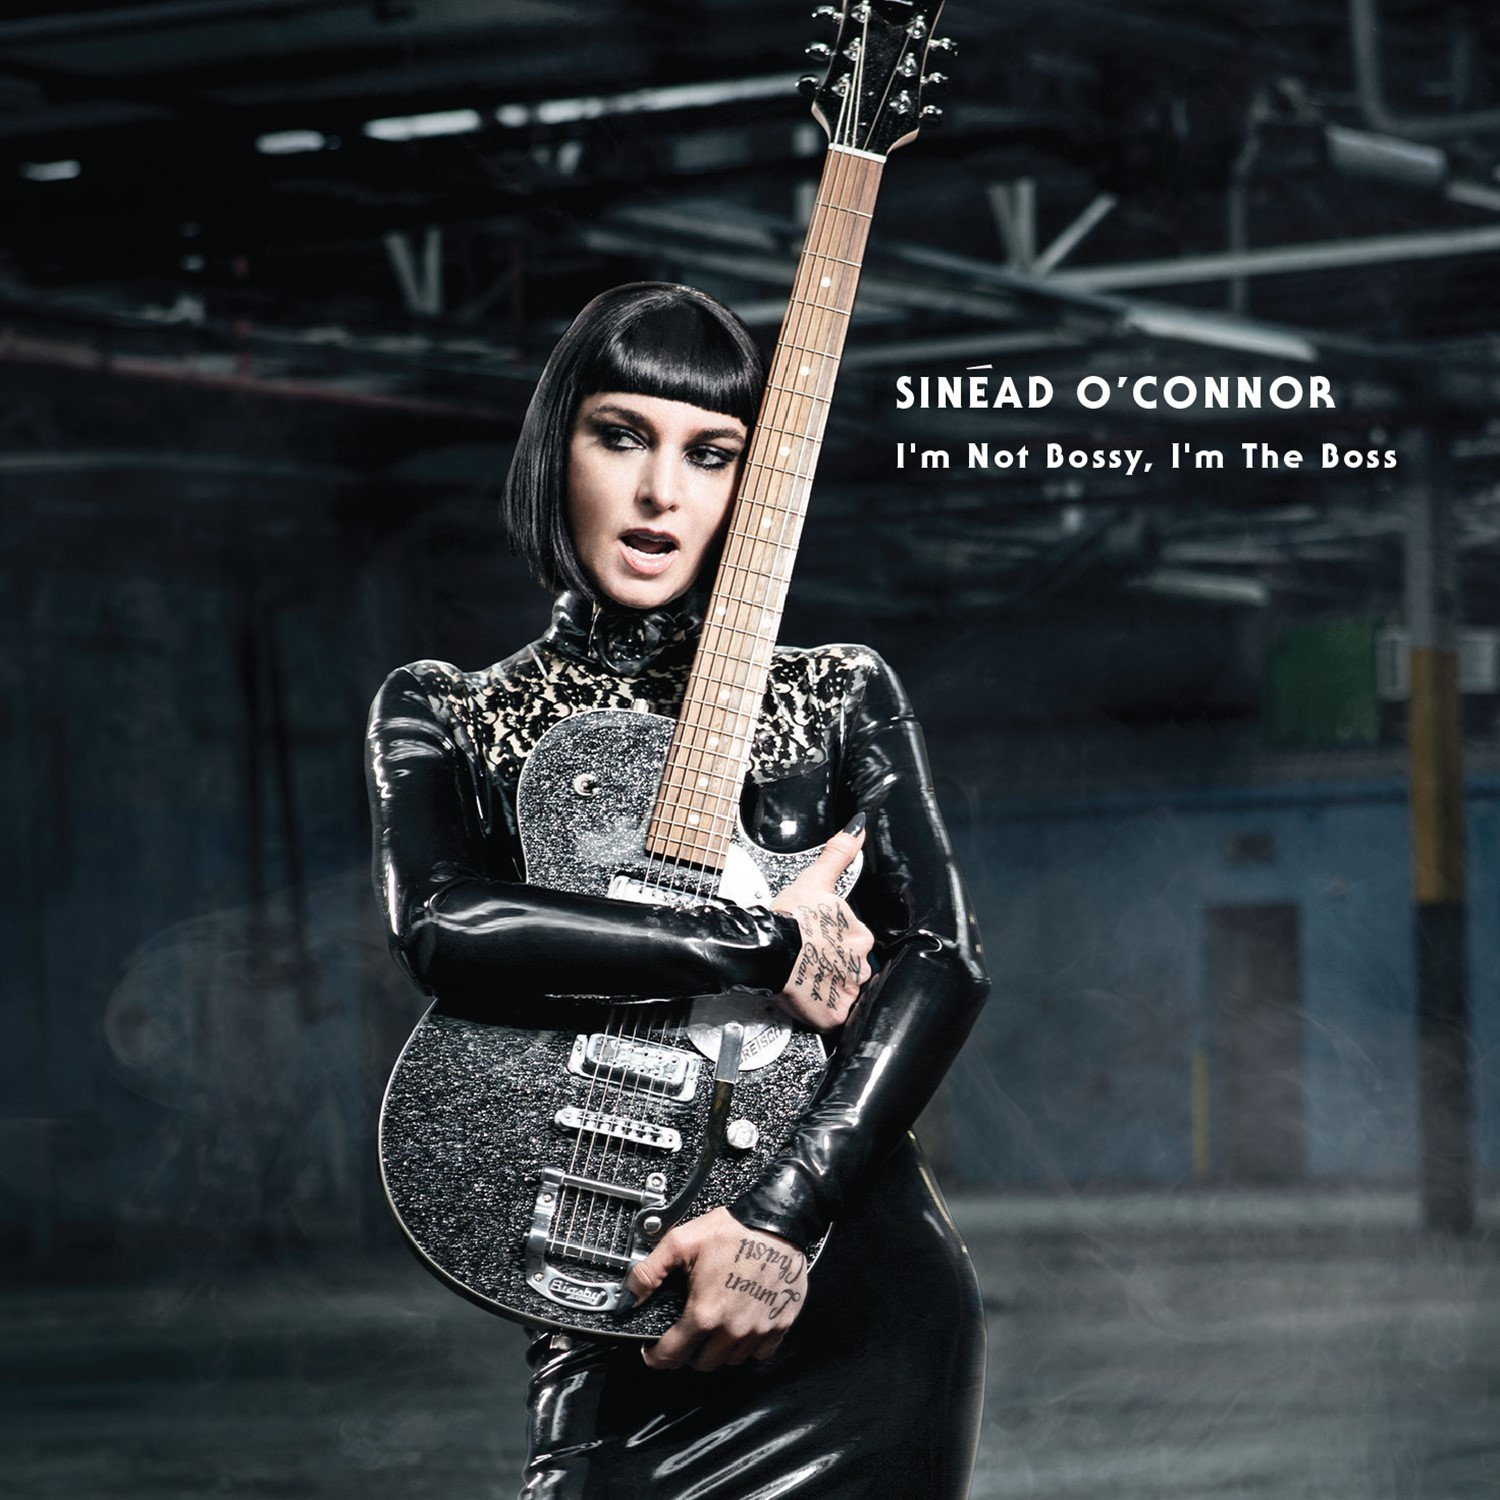 Sinead O'Connor, I'm Not Bossy, I'm The Boss (Nettwerk Records) ****